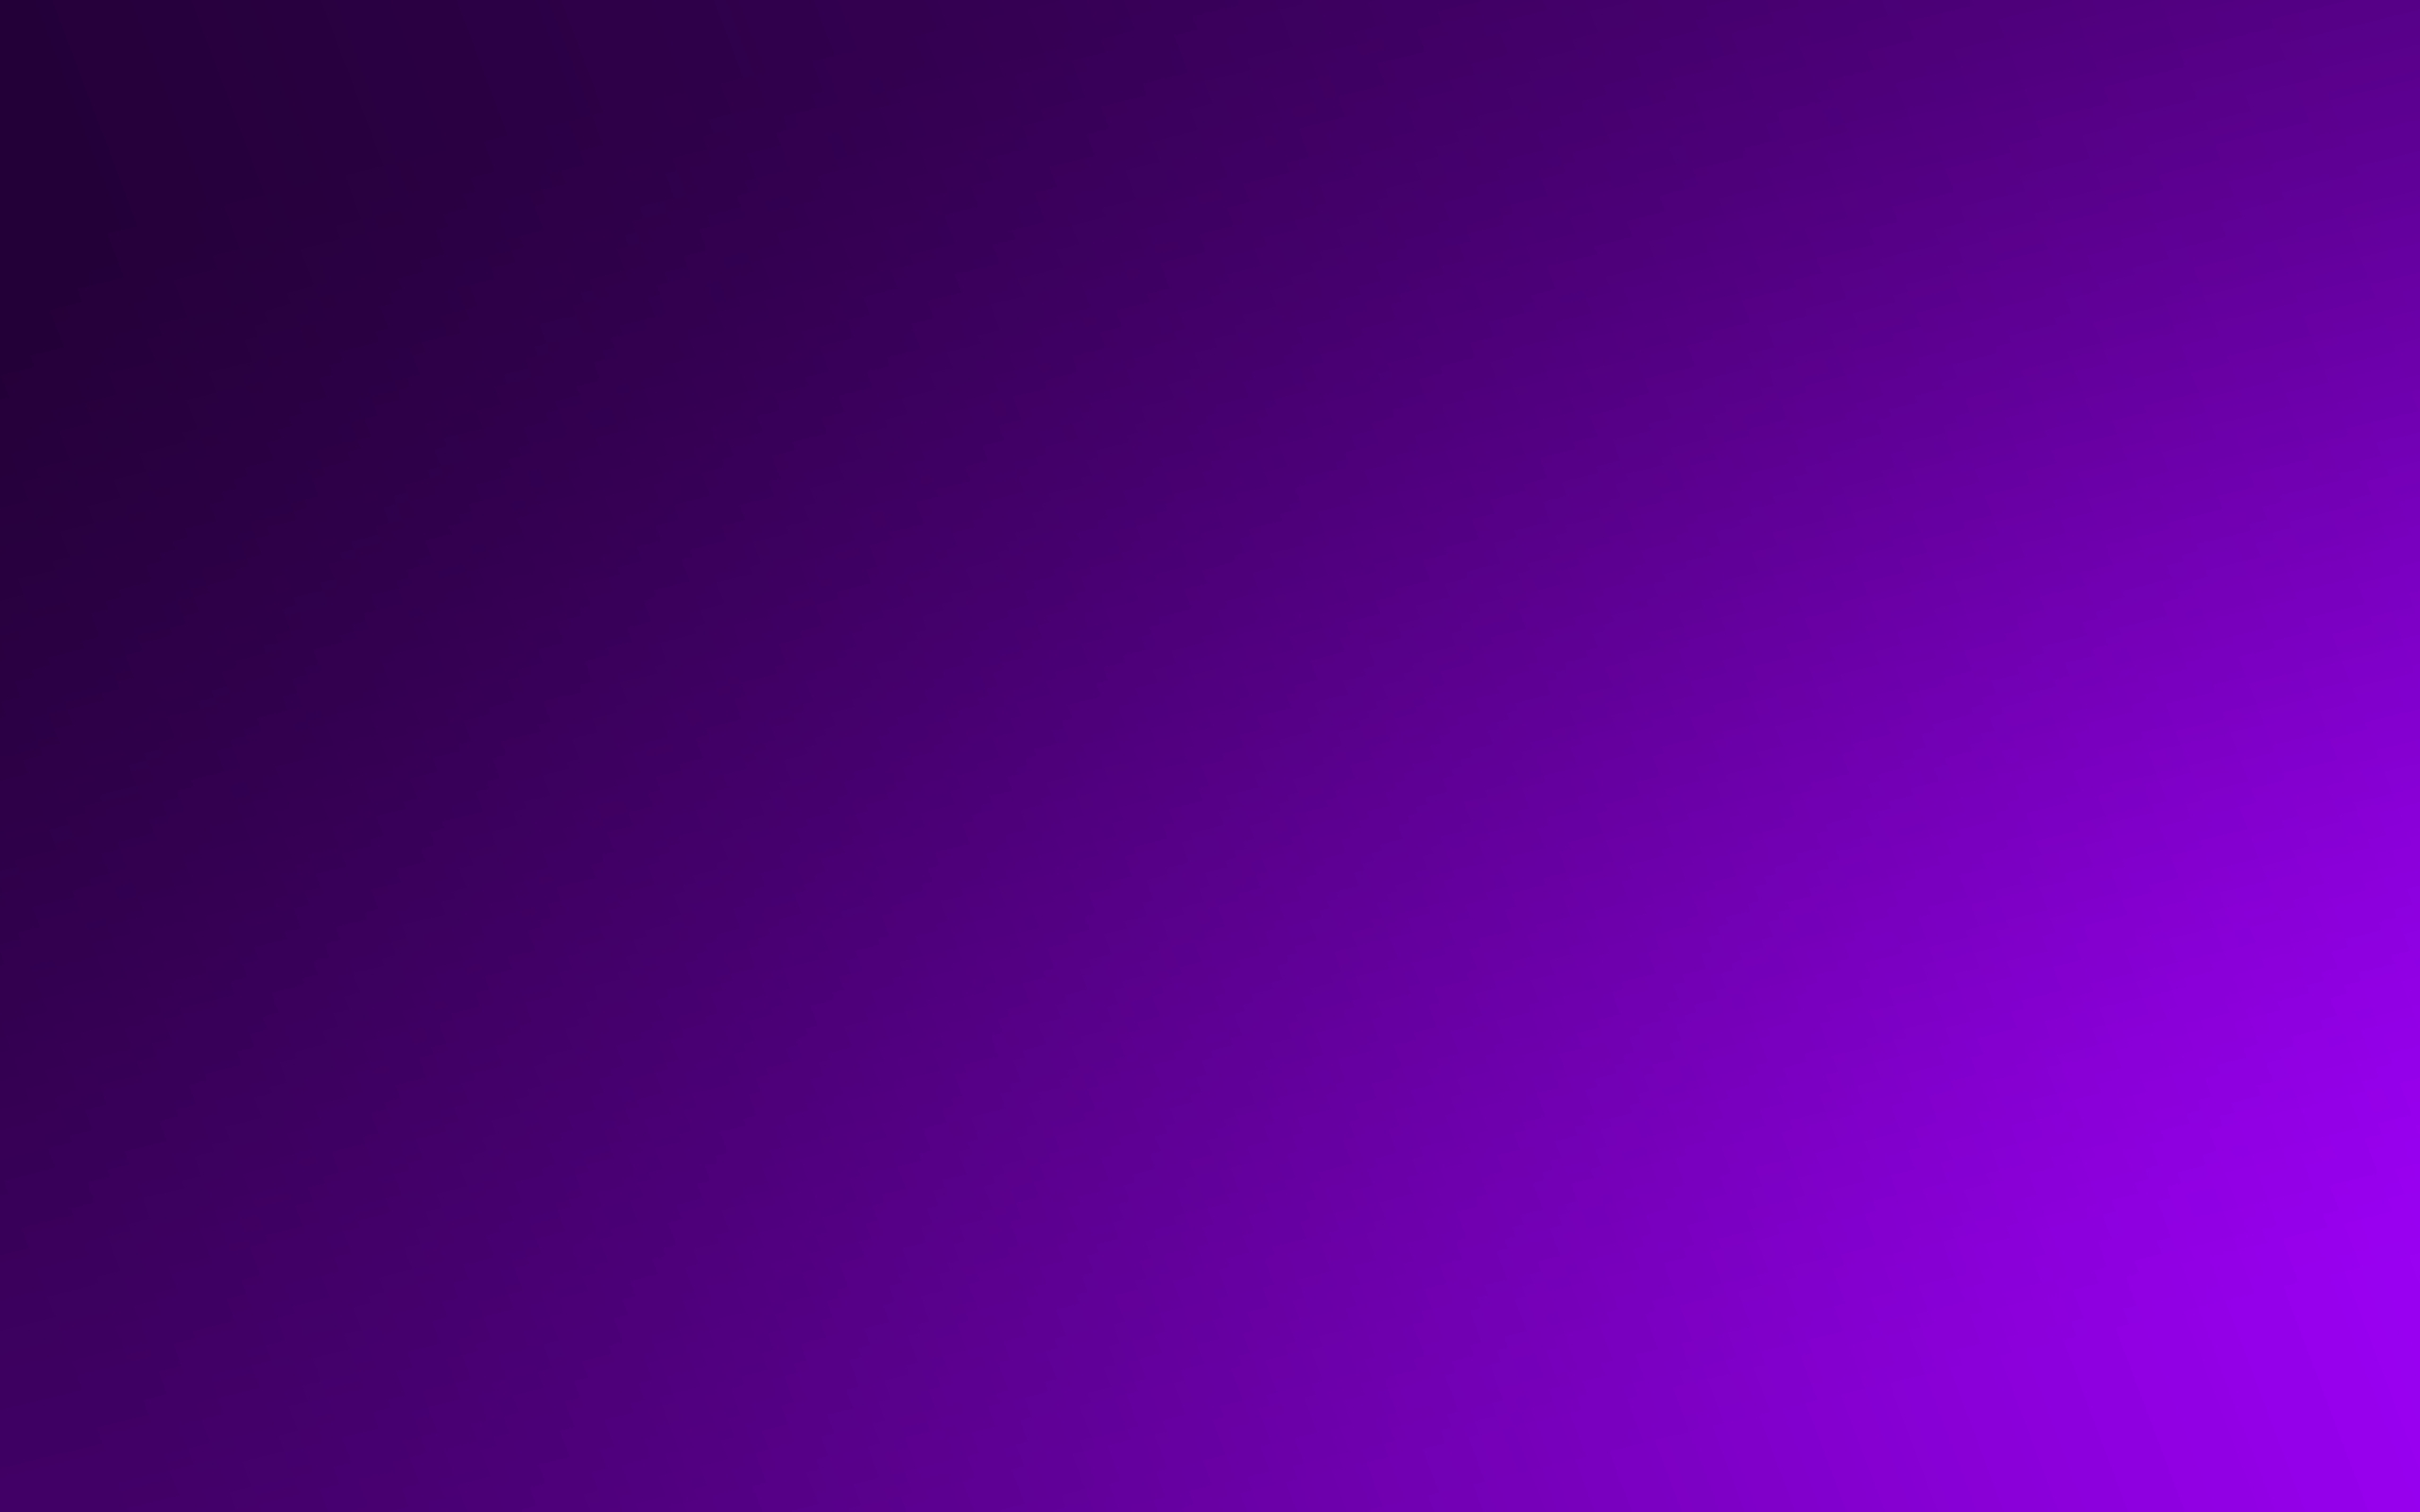 HD Background Violet Color Solid Bright Gradient Wallpaper 2560x1600